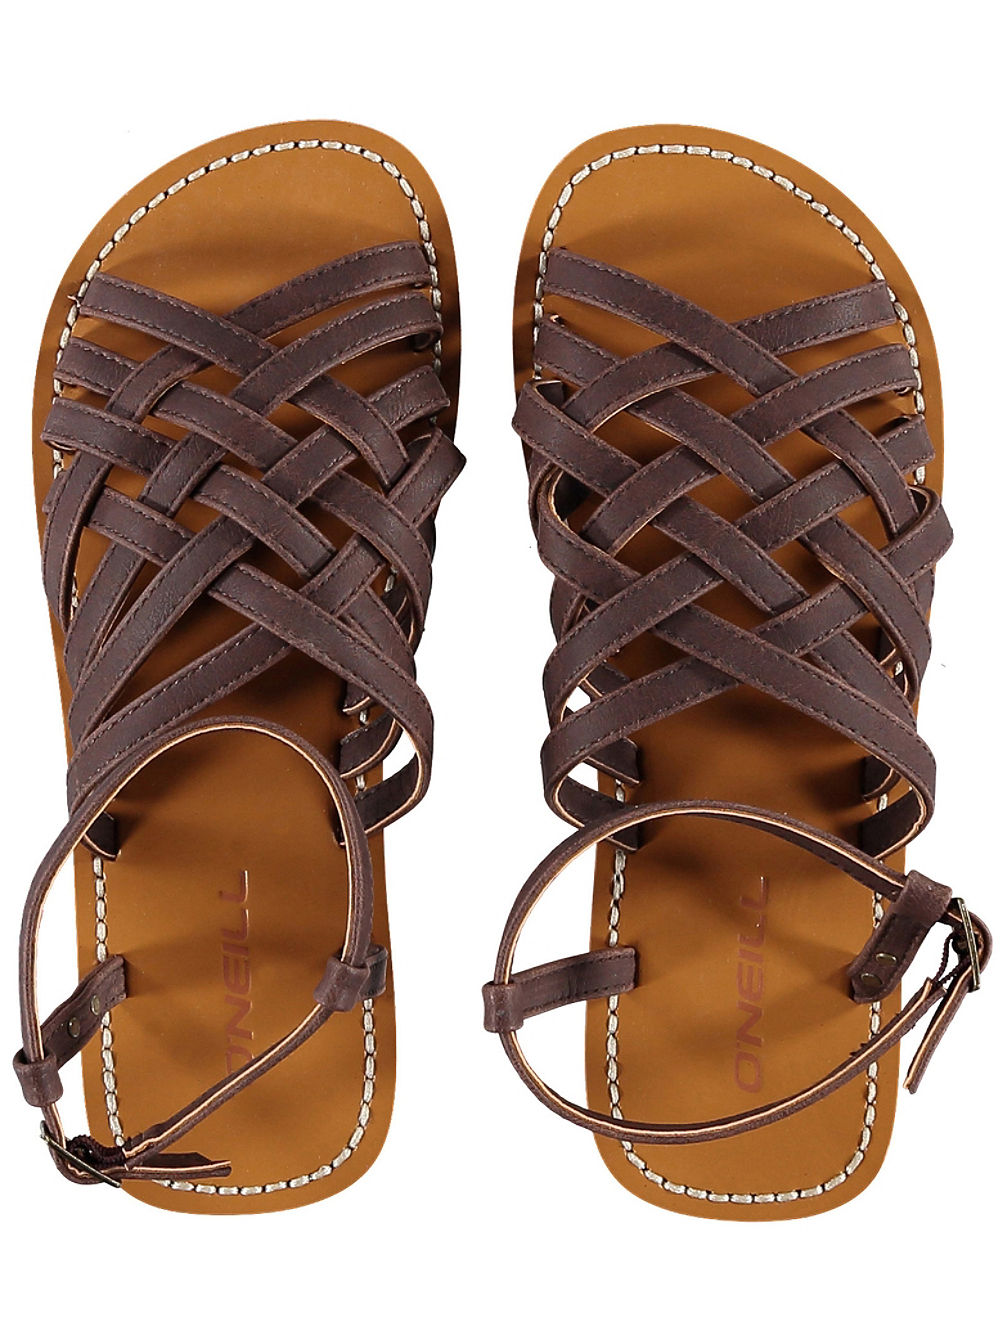 Braided Sandals Women